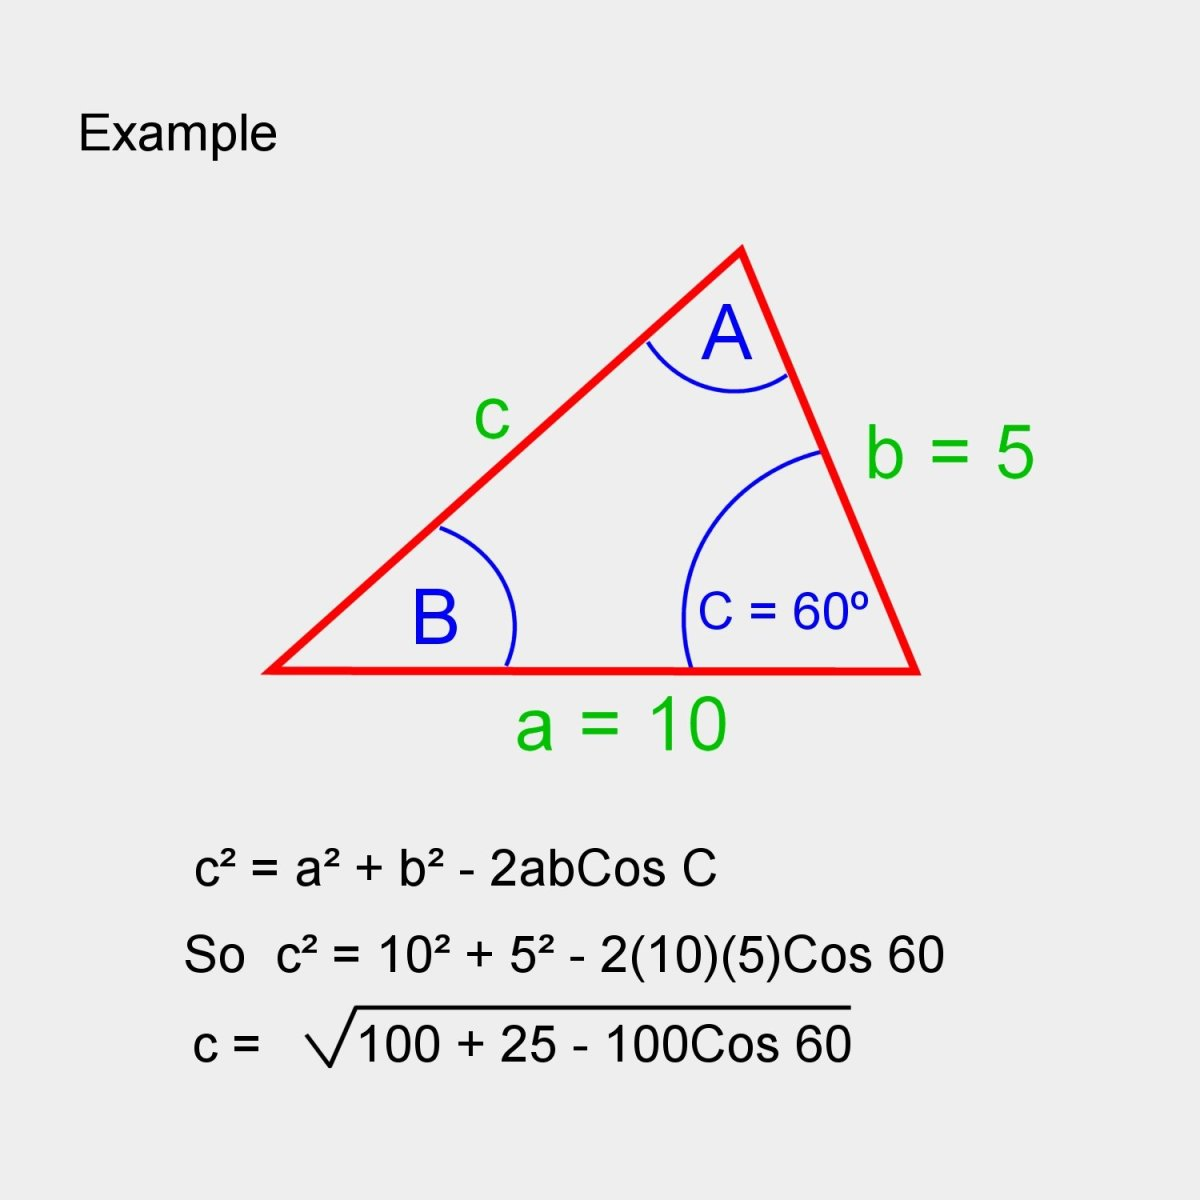 Example using the cosine rule.